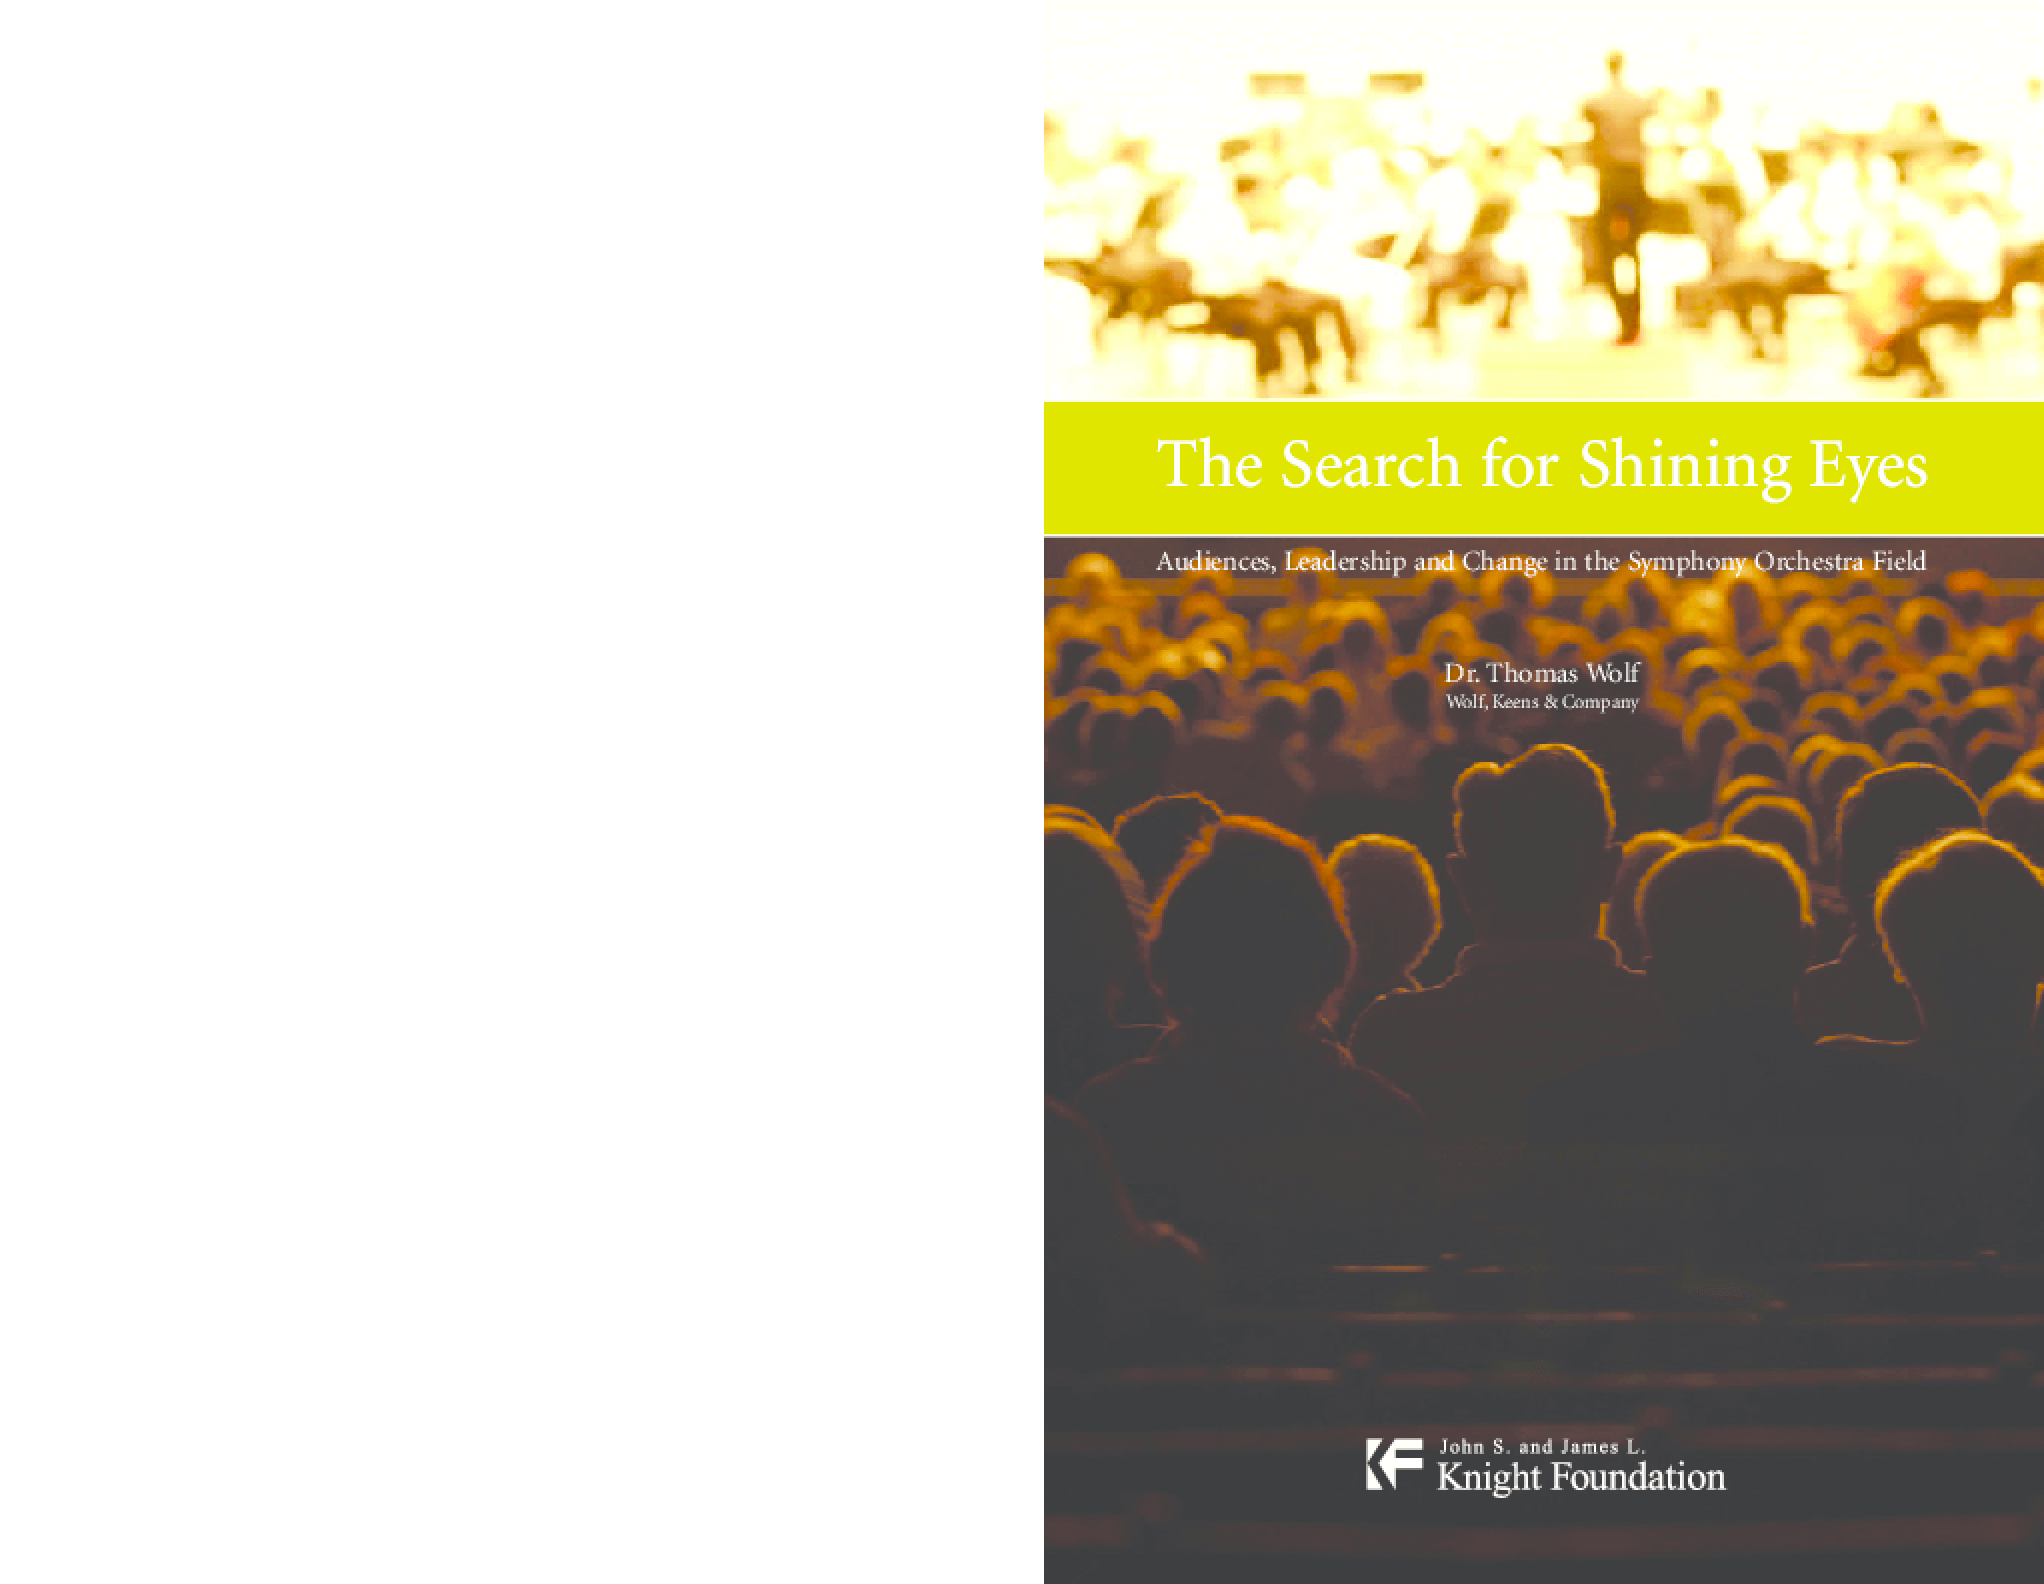 The Search for Shining Eyes: Audiences, Leadership and Change in the Symphony Orchestra Field